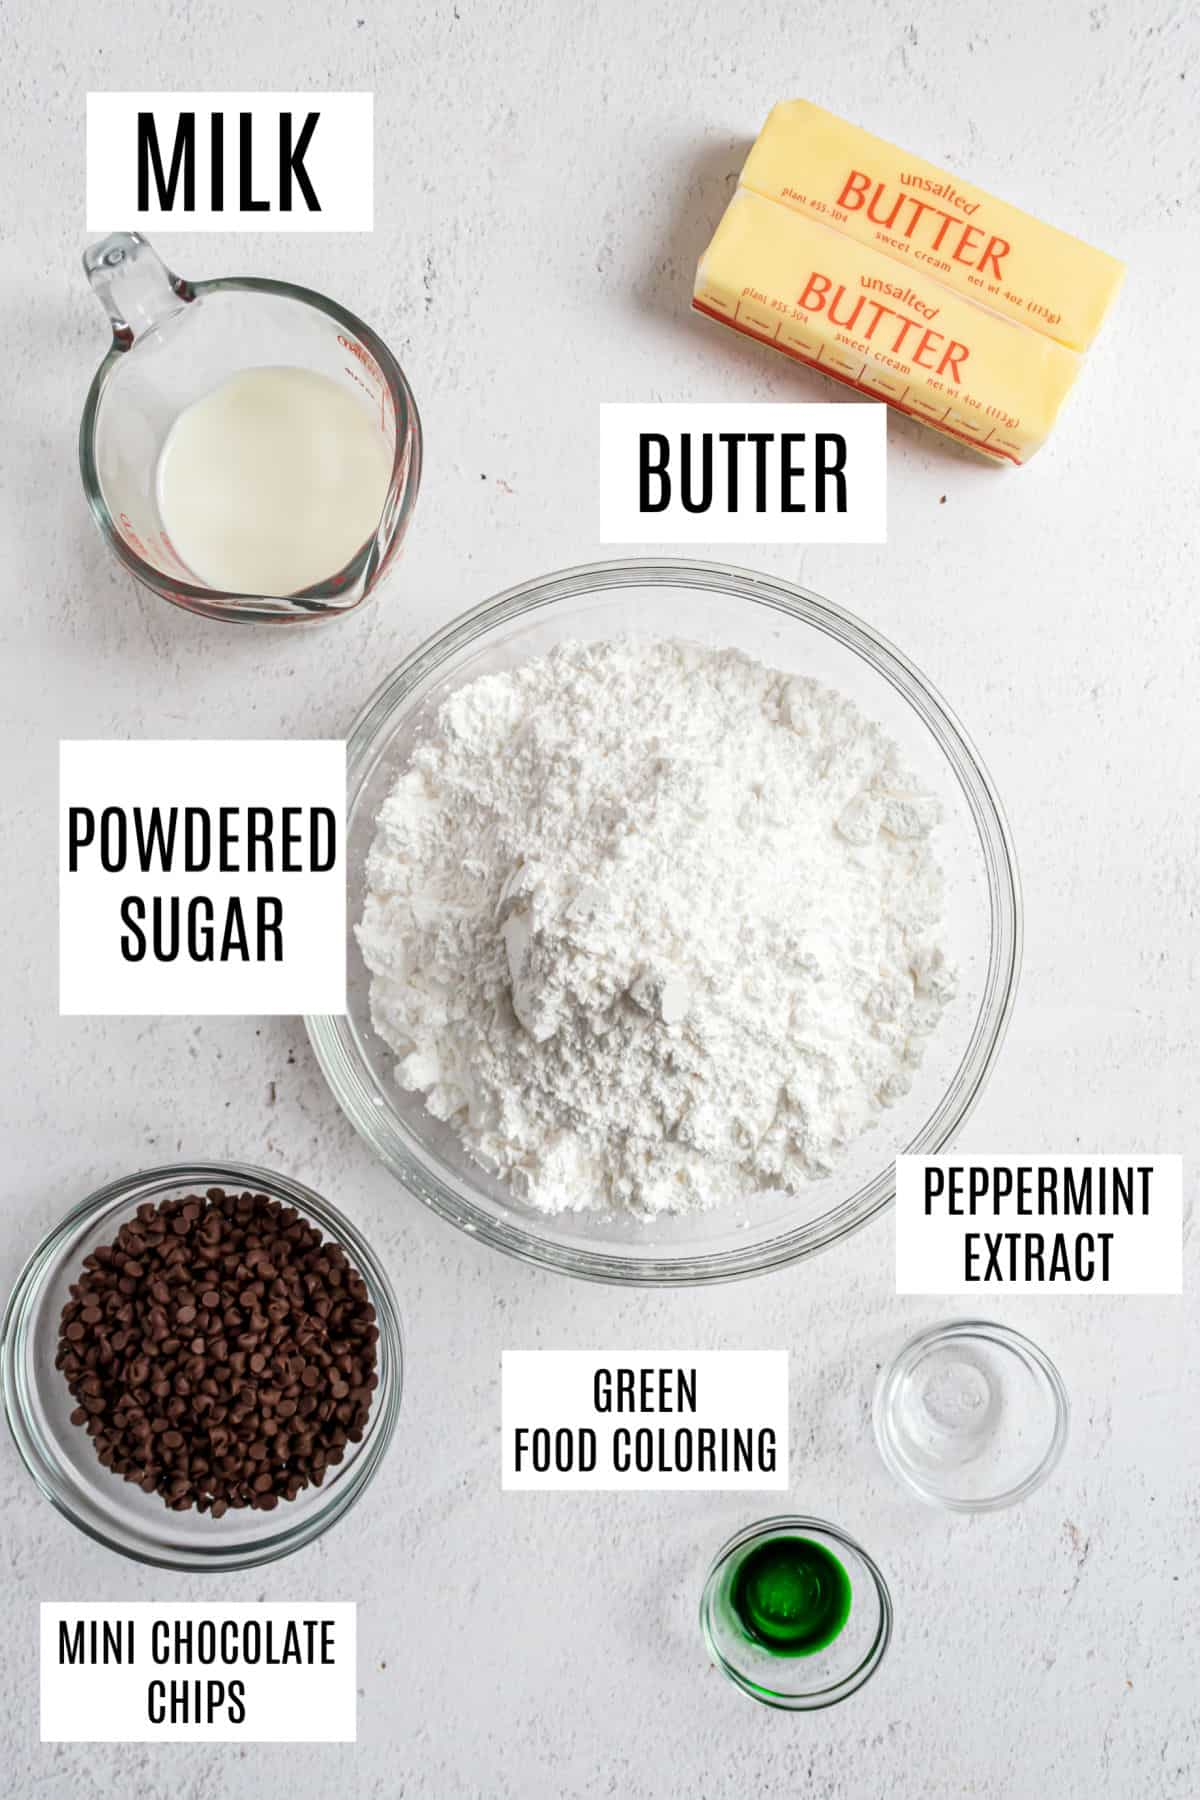 Ingredients needed for mint chocolate chip frosting.